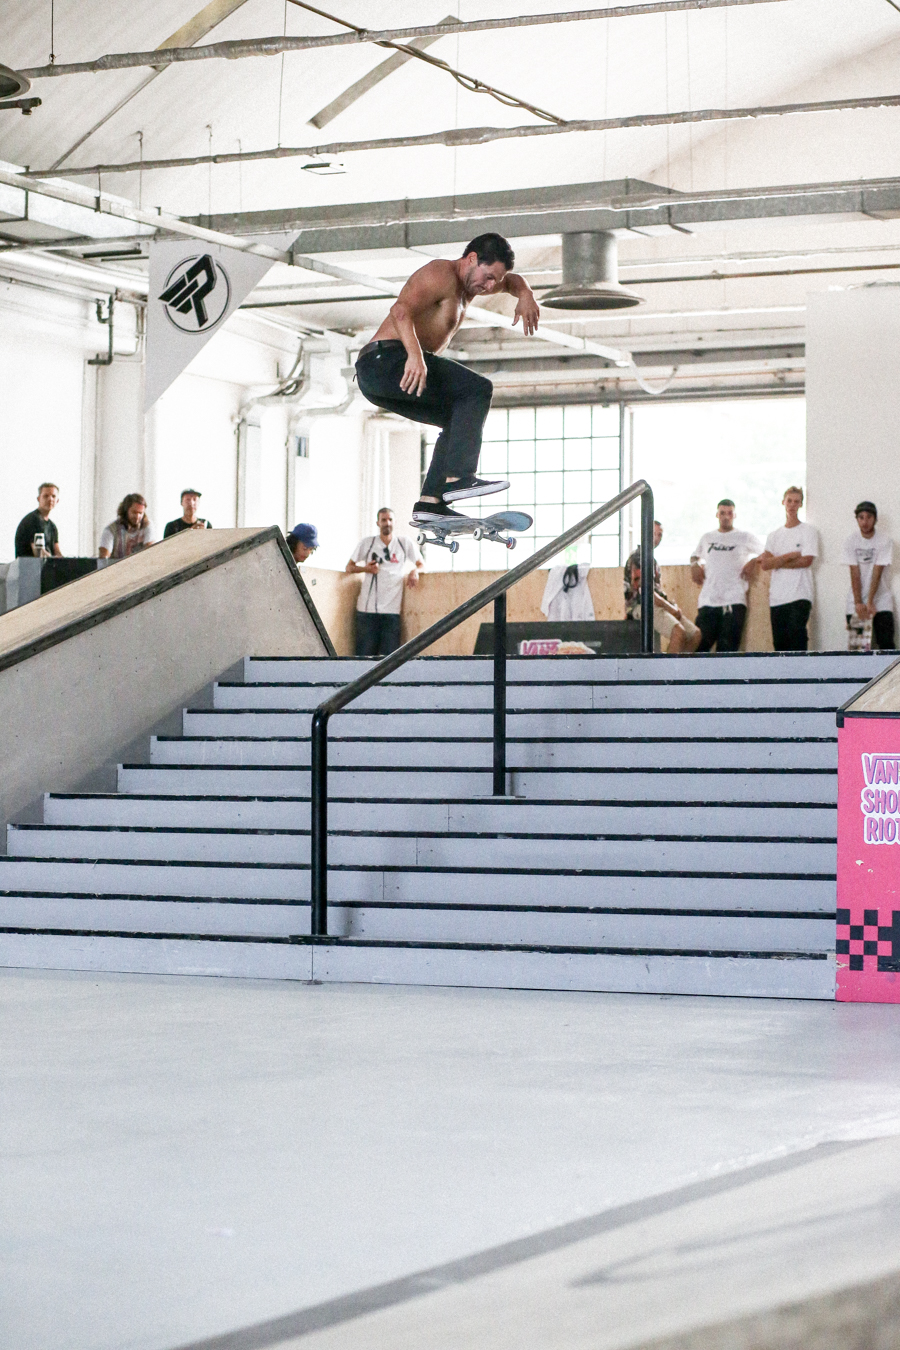 055df1951b Vans Shop Riot 2018 Italy photo report. « a brief glance skateboard mag